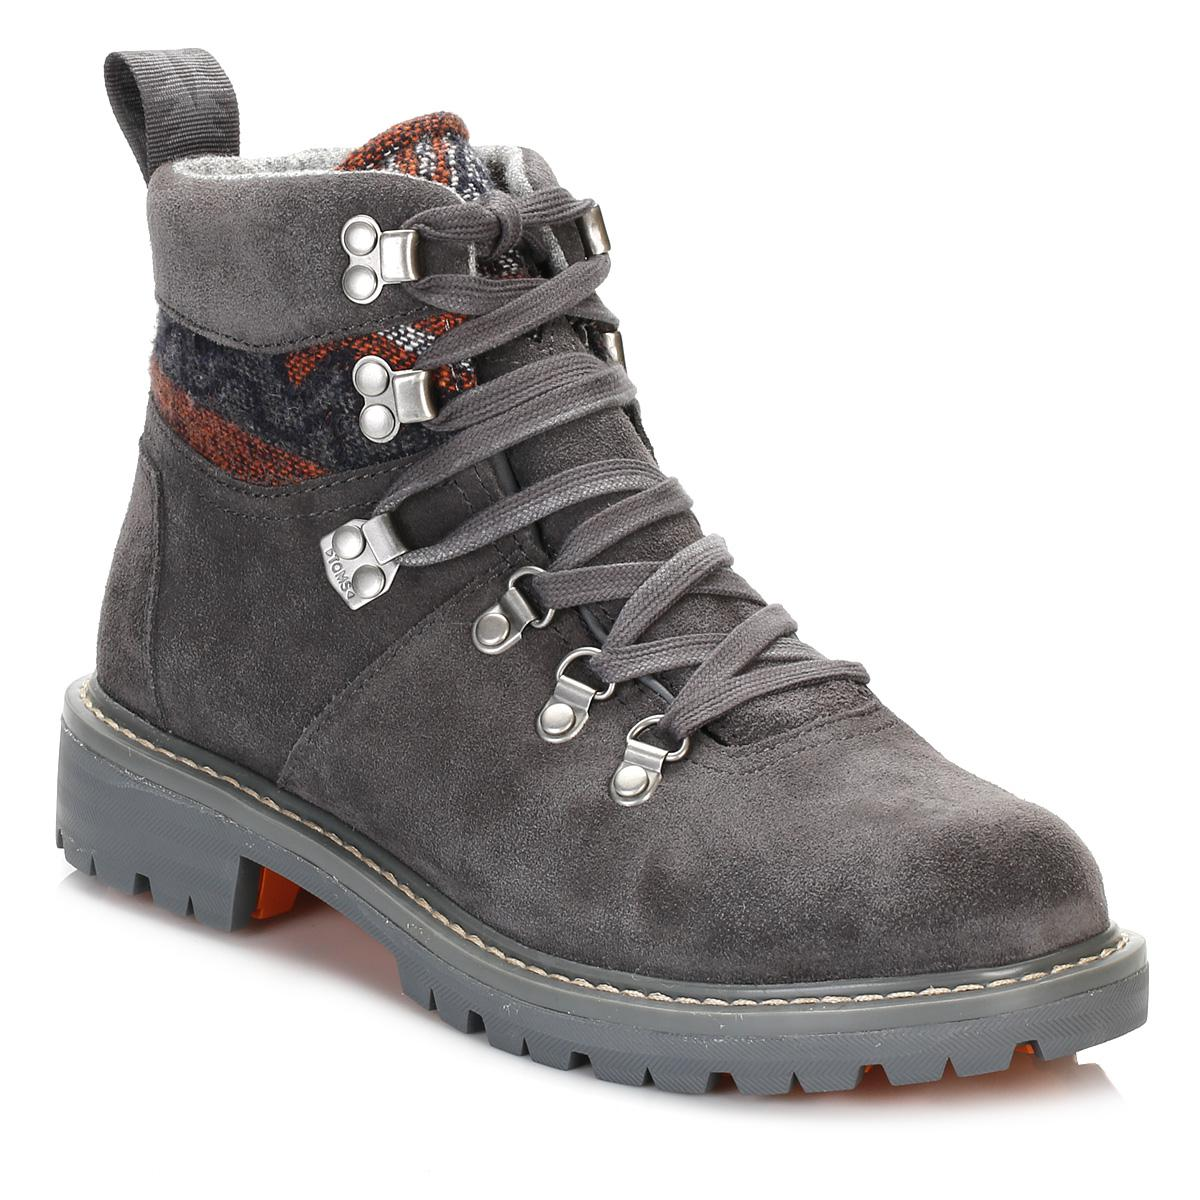 6f2c4555455 Lyst - TOMS Womens Iron Grey Summit Hiker Boots in Gray